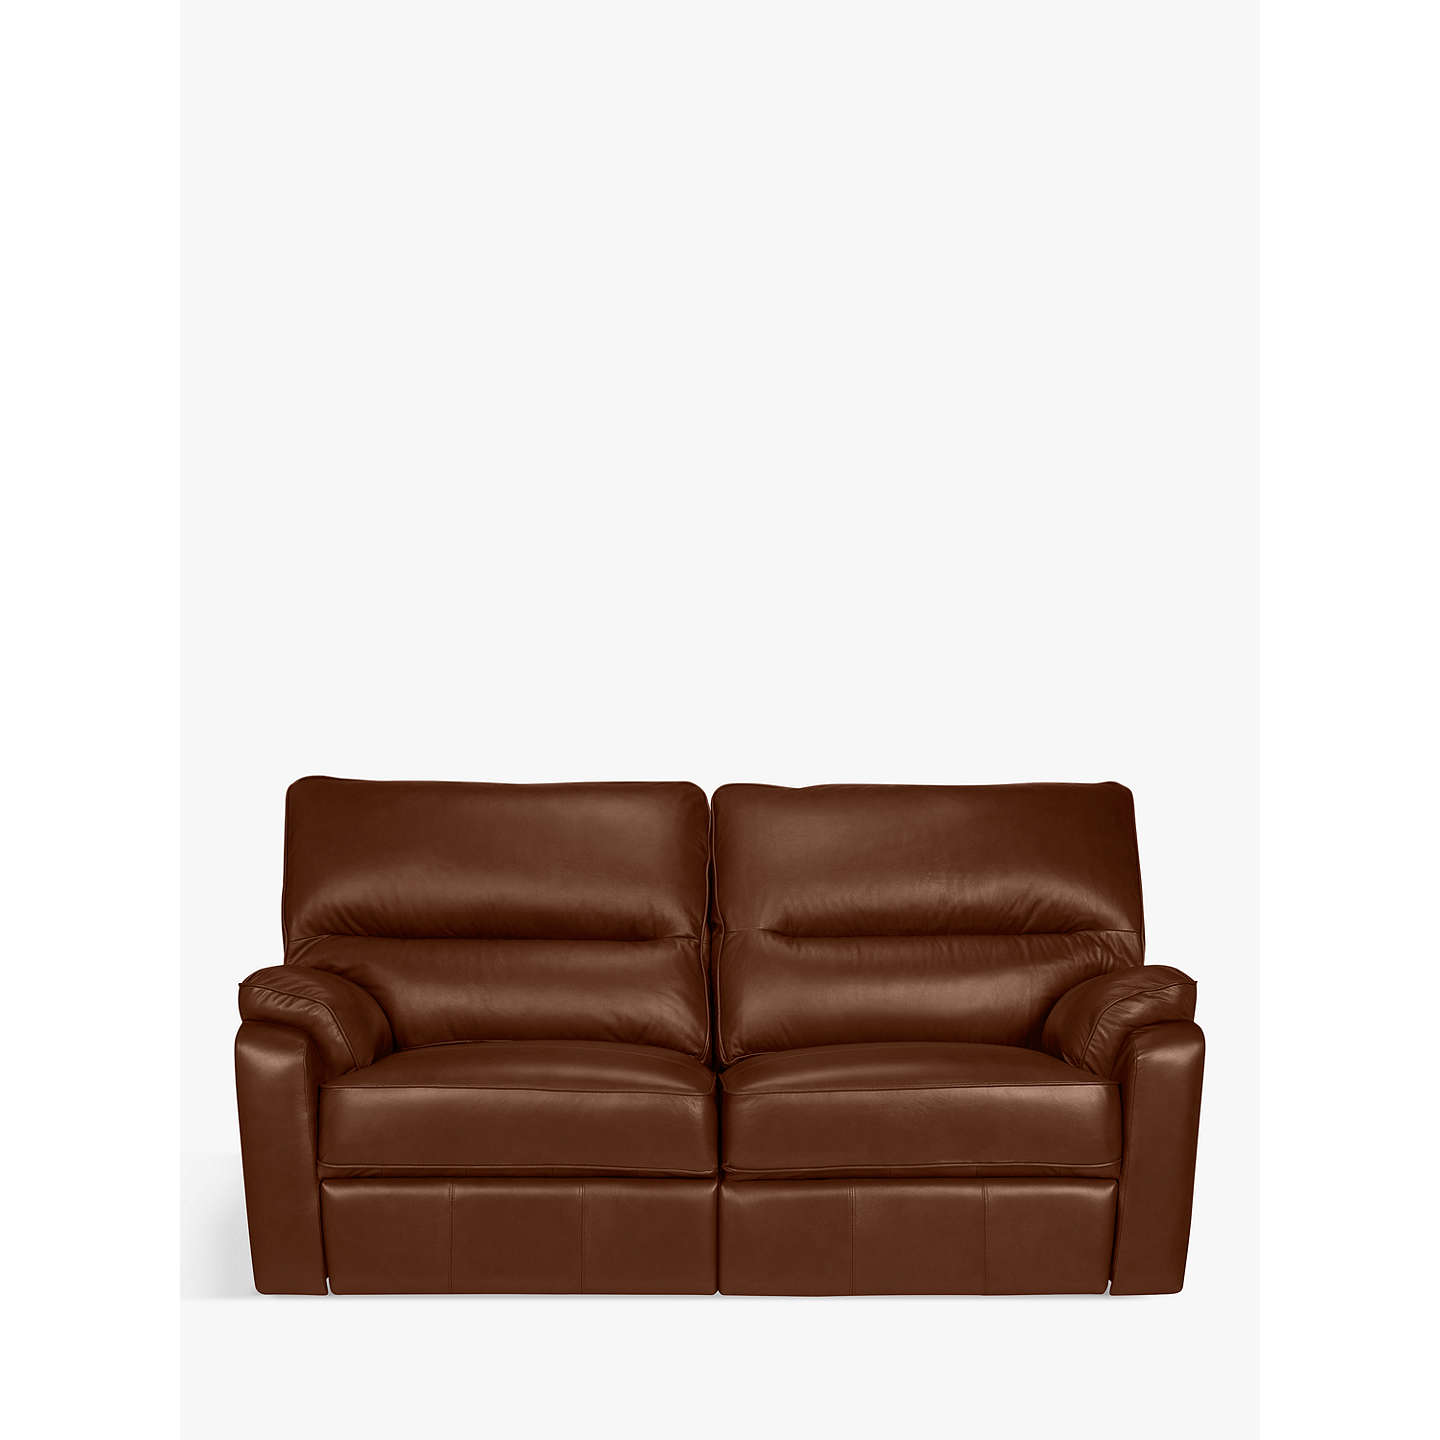 2 Seater Brown Leather Sofa Cheap Www Gradschoolfairs Com